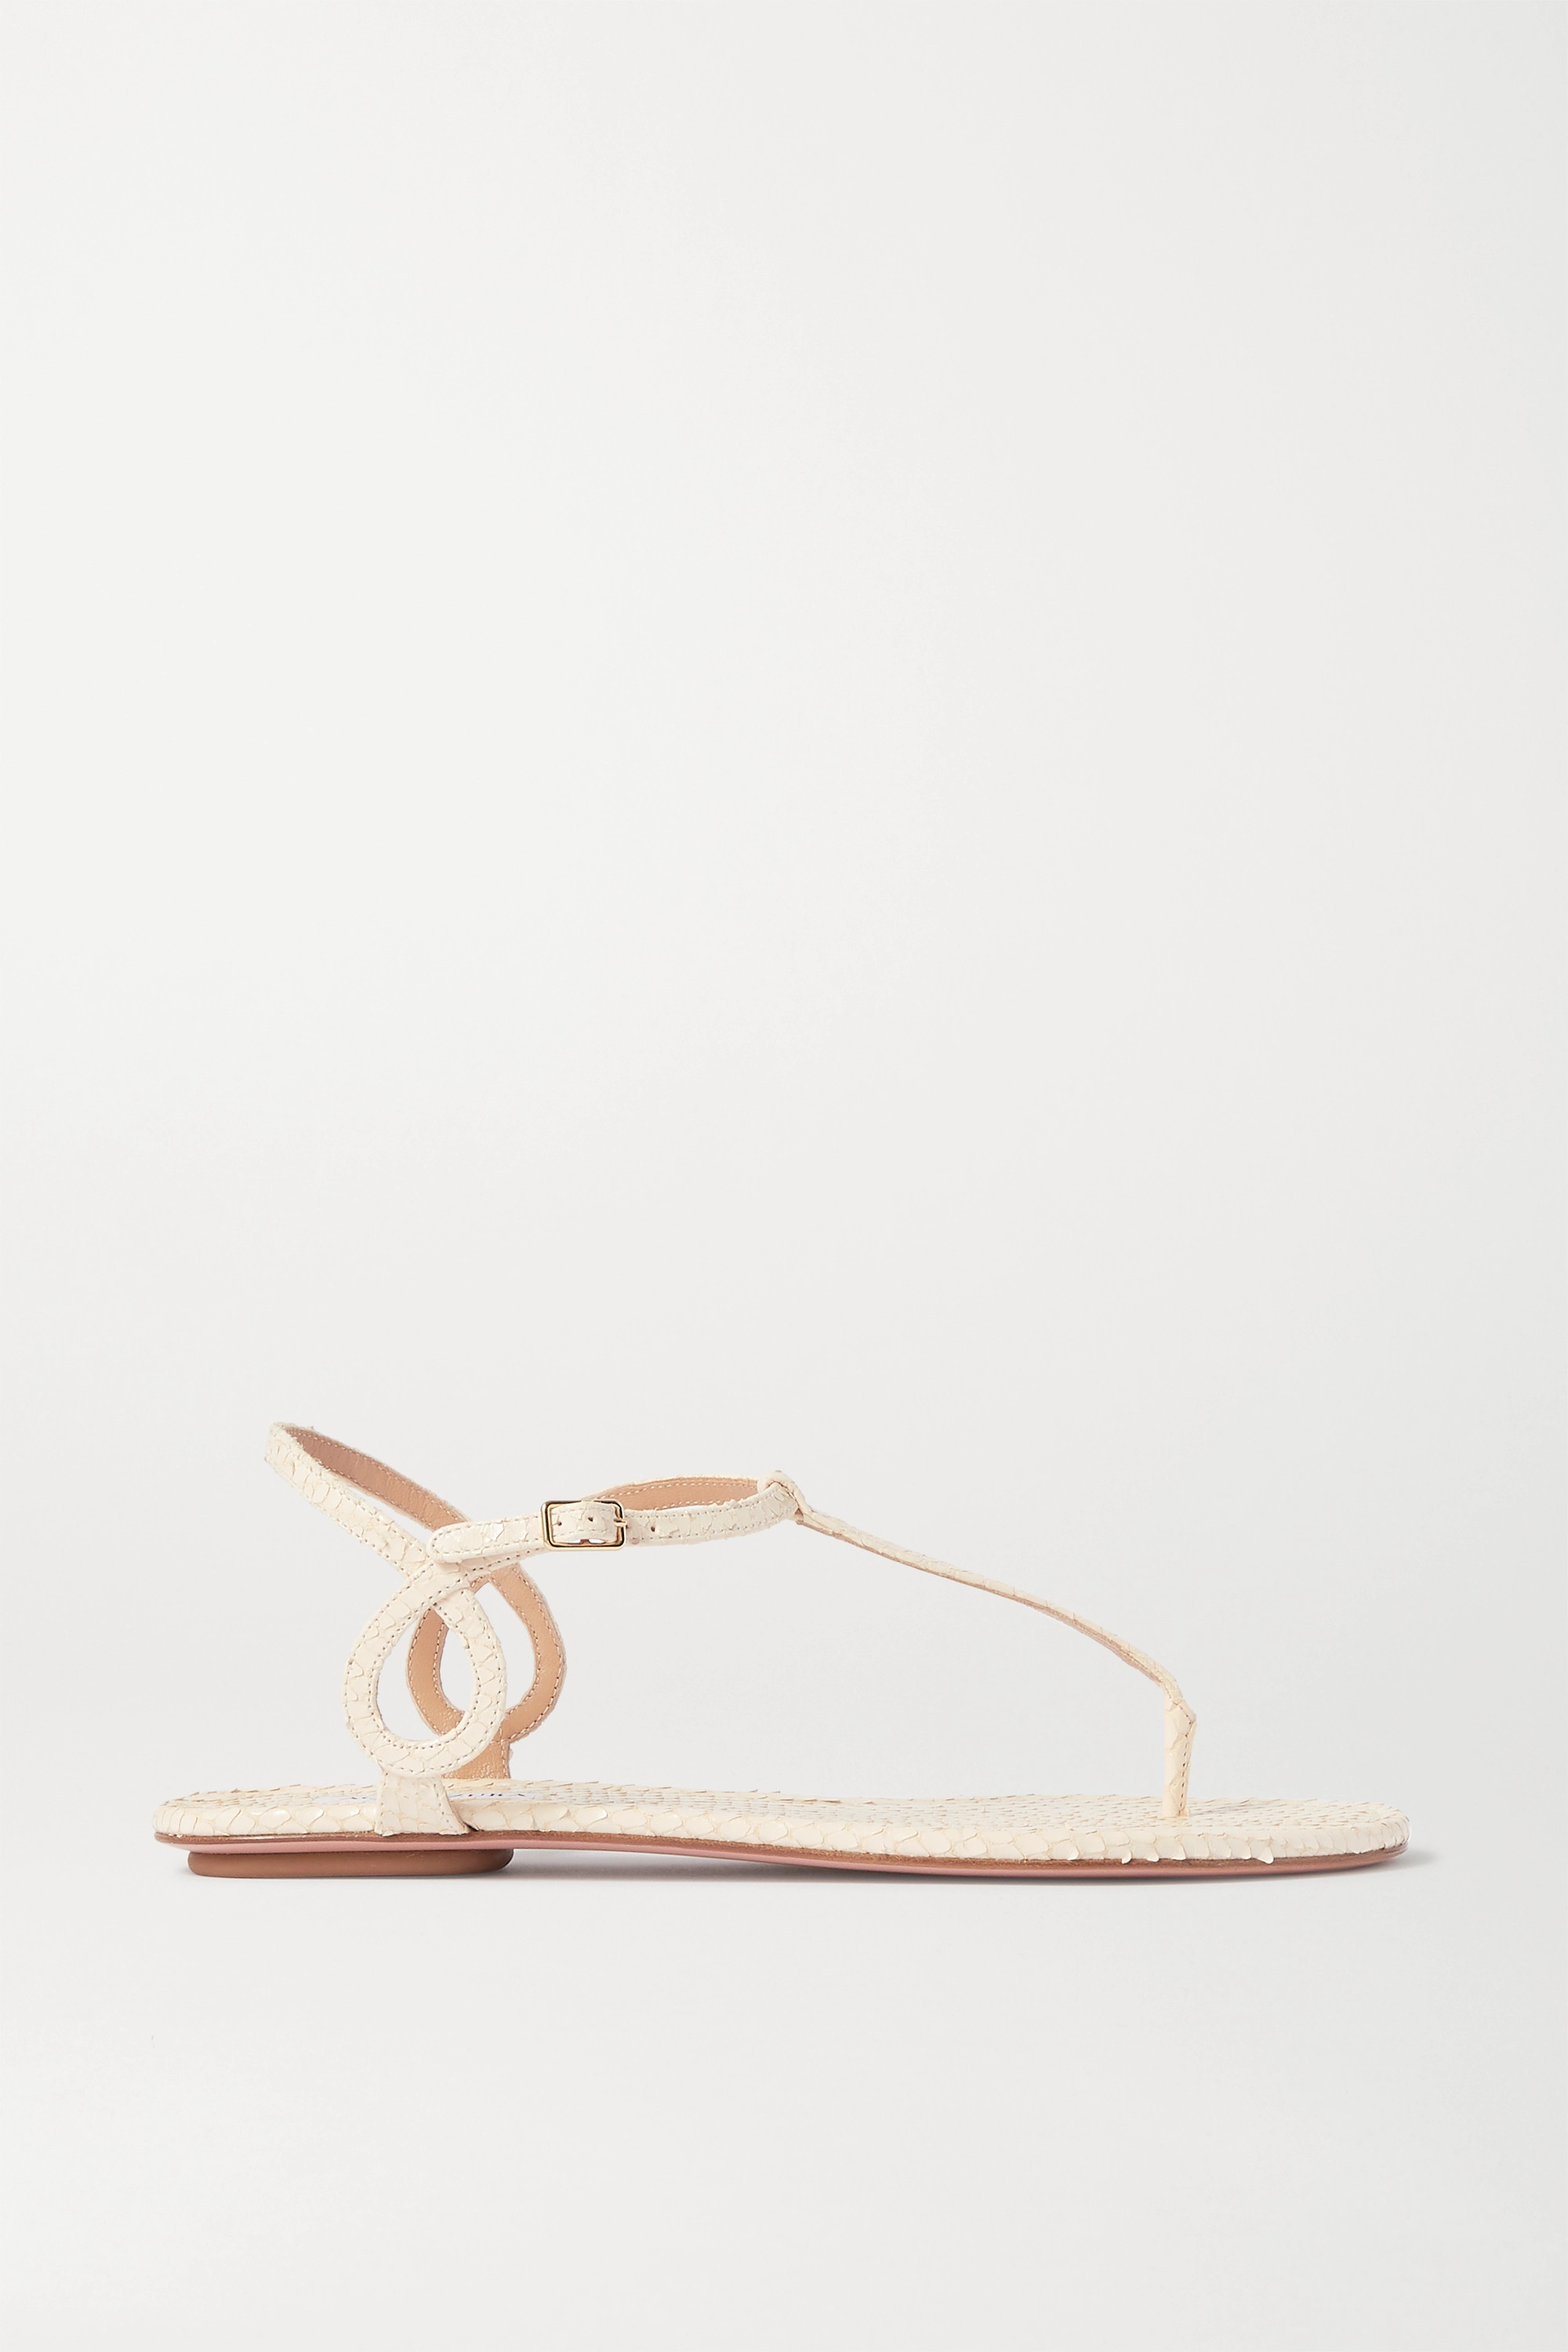 Aquazzura Almost Bare snake-effect leather sandals